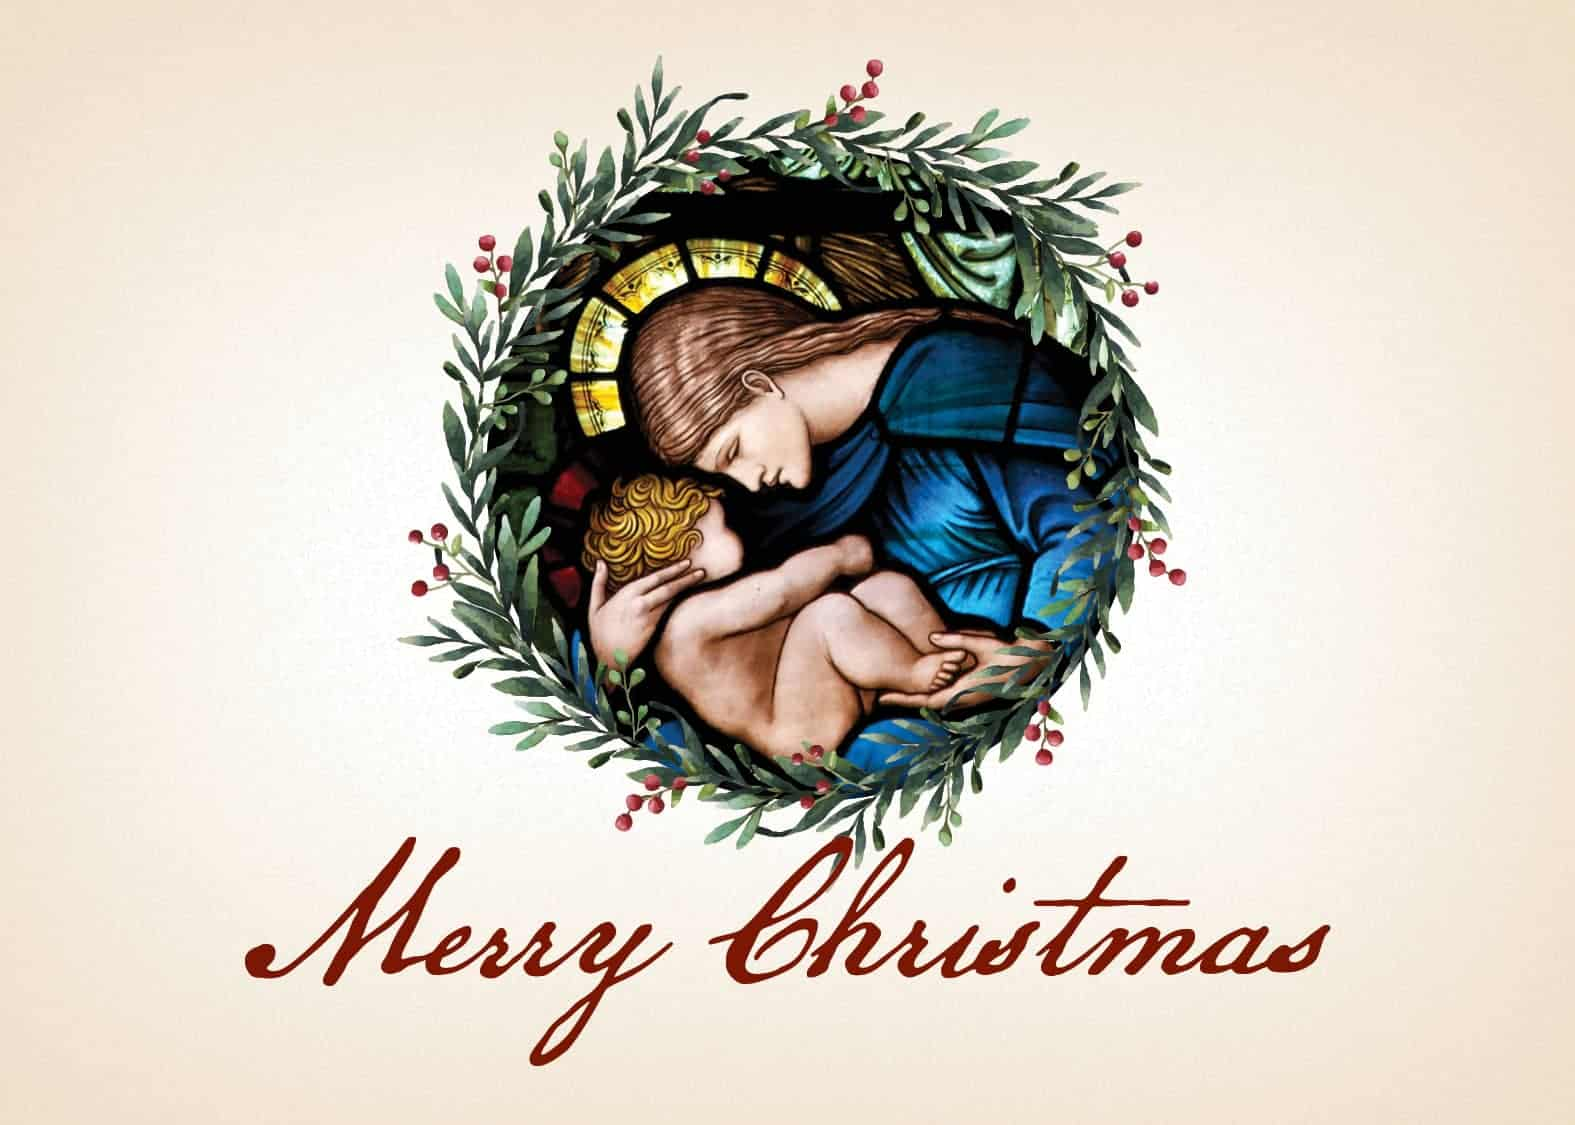 Merry Christmas Card.Madonna And Child Christmas Card From Serra Set Of 10